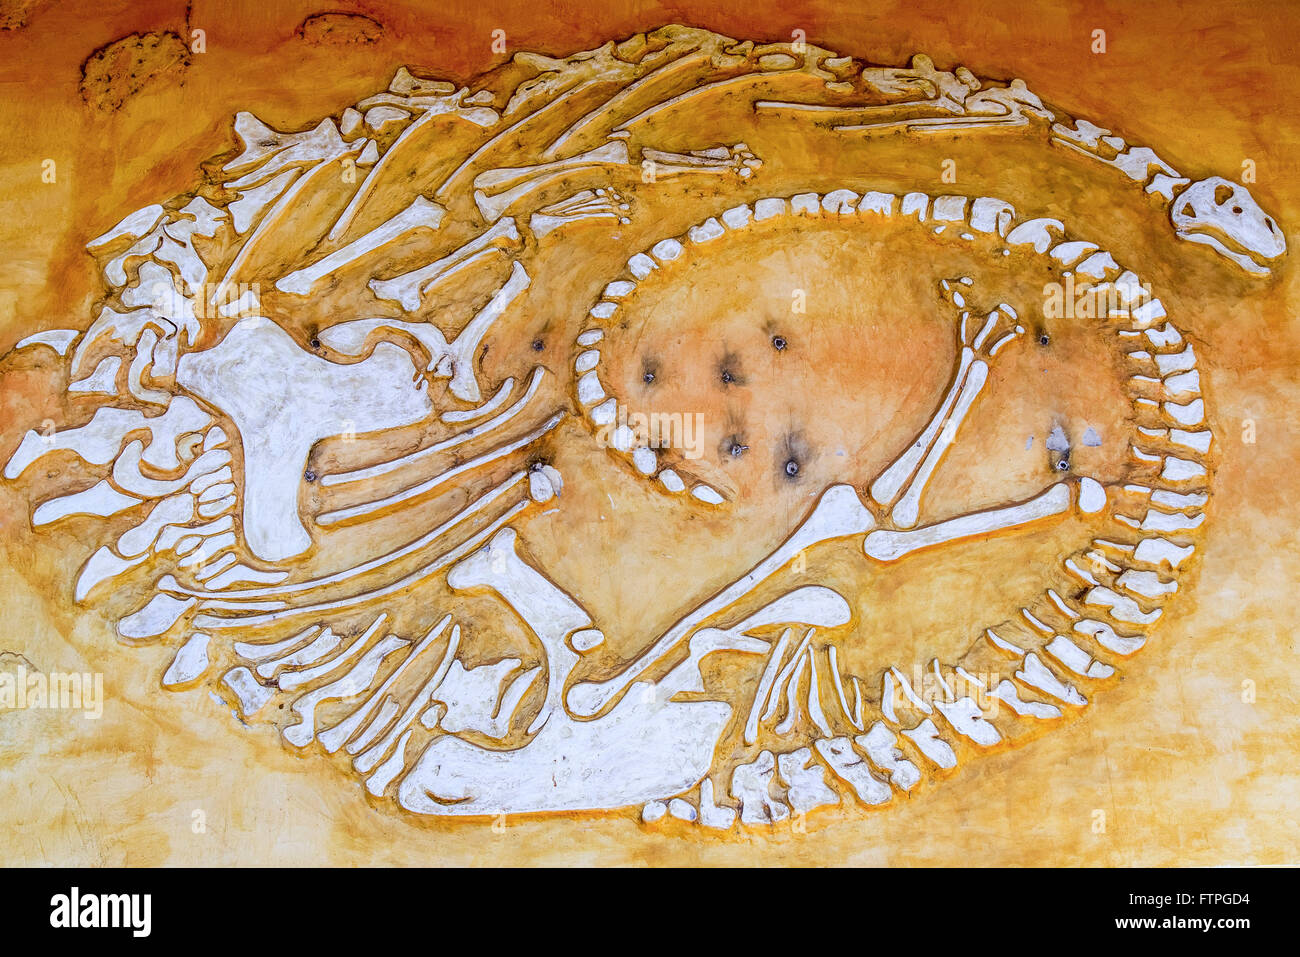 Representation of bones in Dinosaur Museum and Research Center paleontological - Stock Image